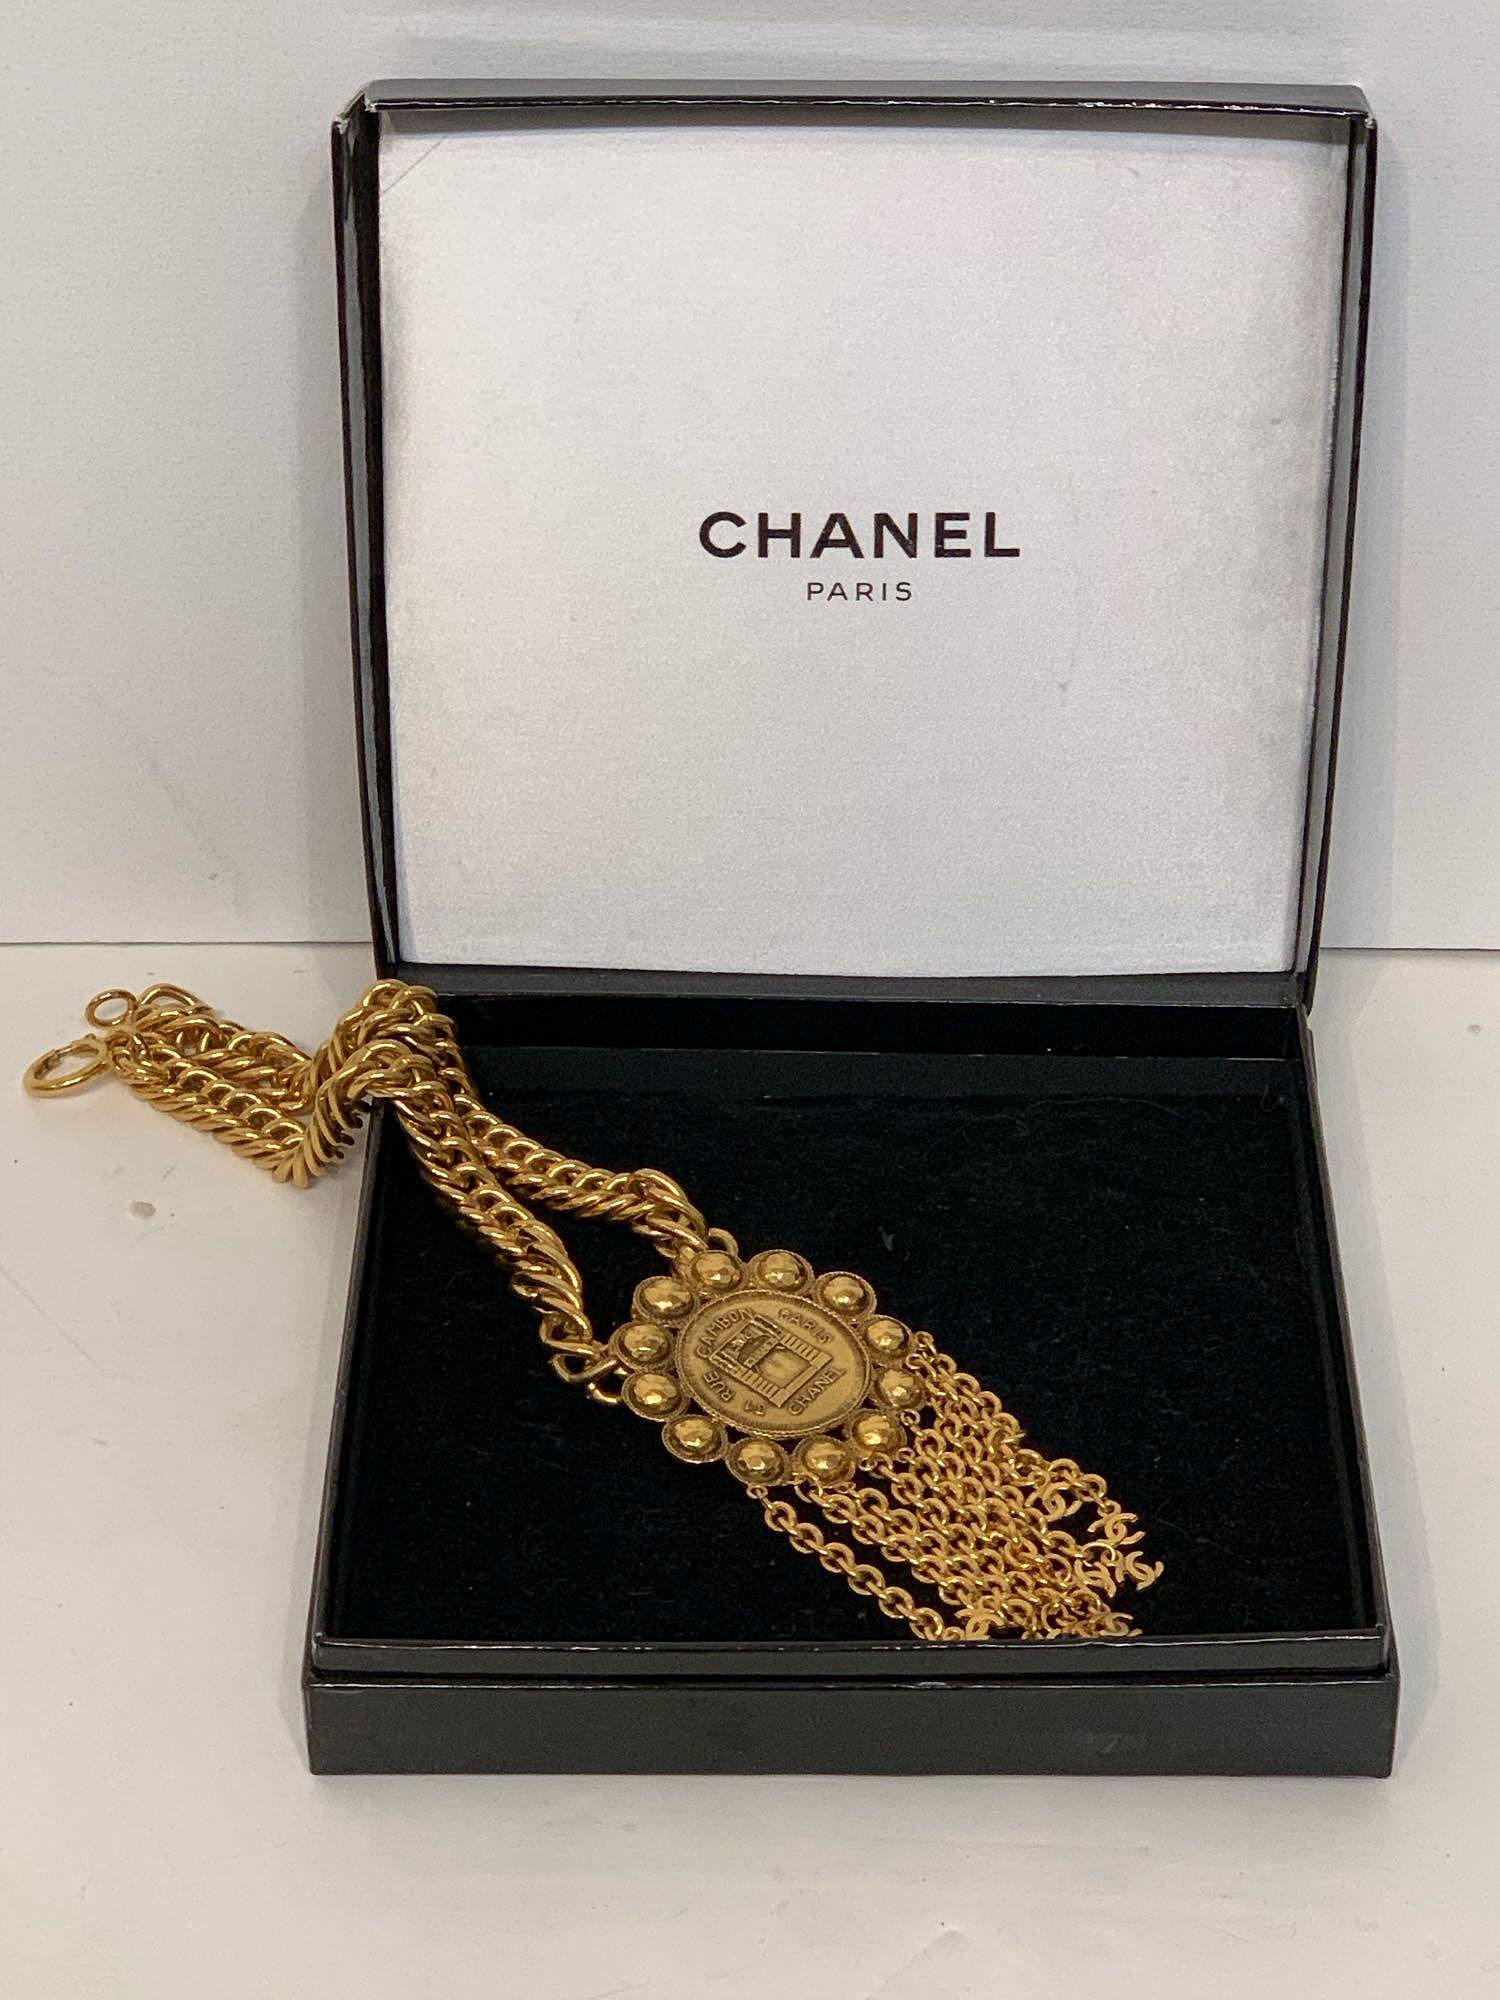 Chanel France Rue Cambon Paris Necklace